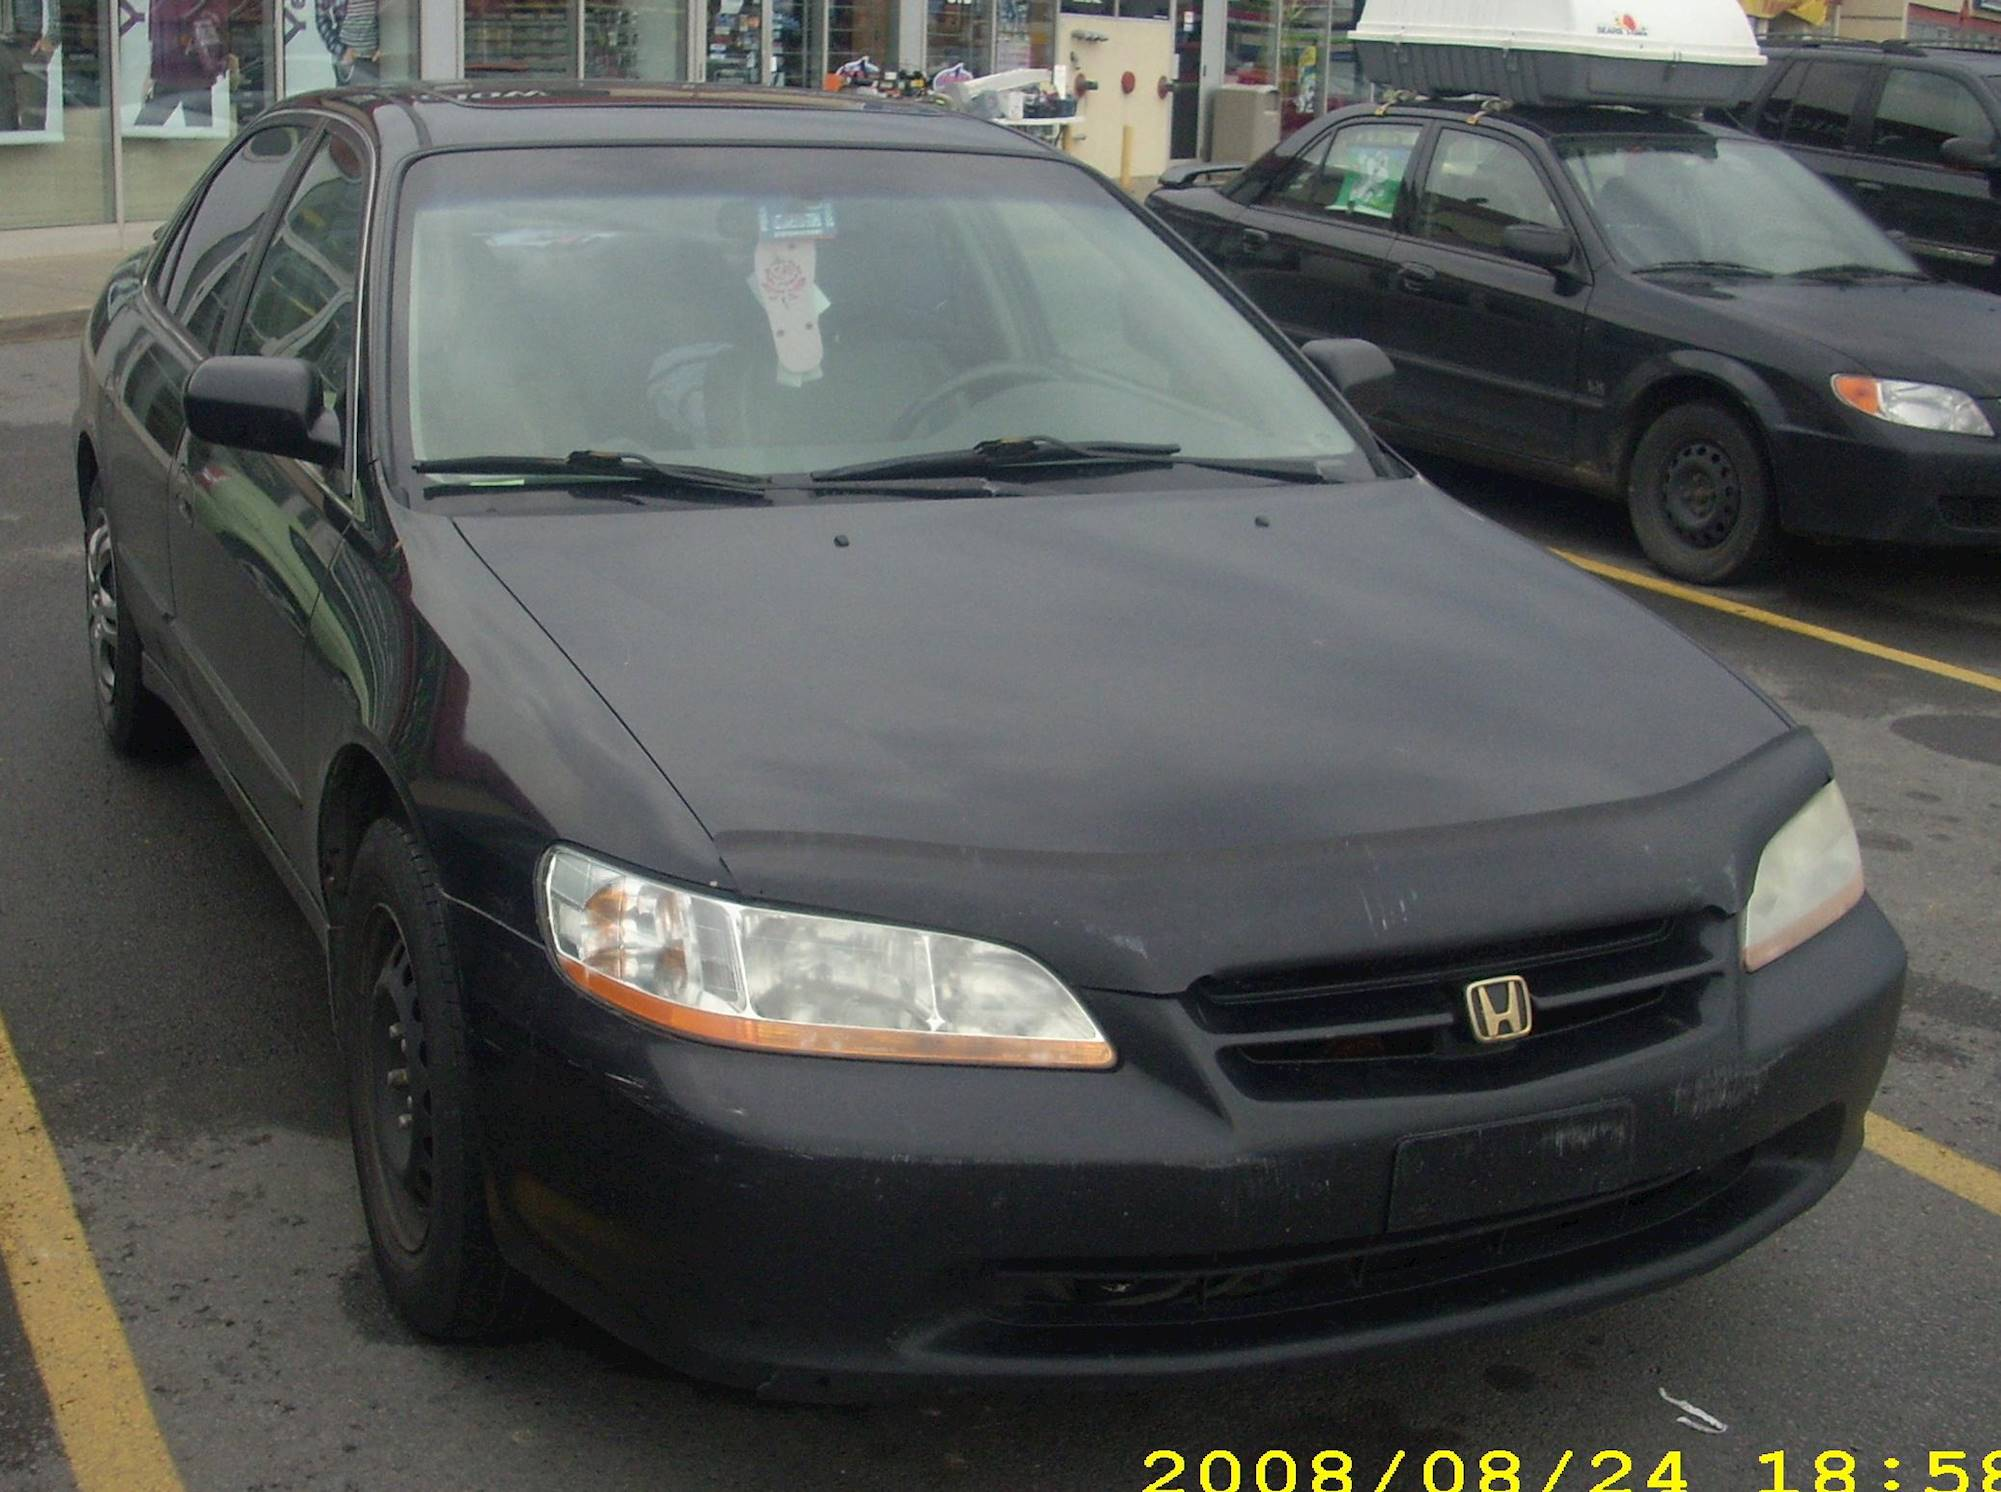 2000 honda accord coupe 3.0 vtec specs